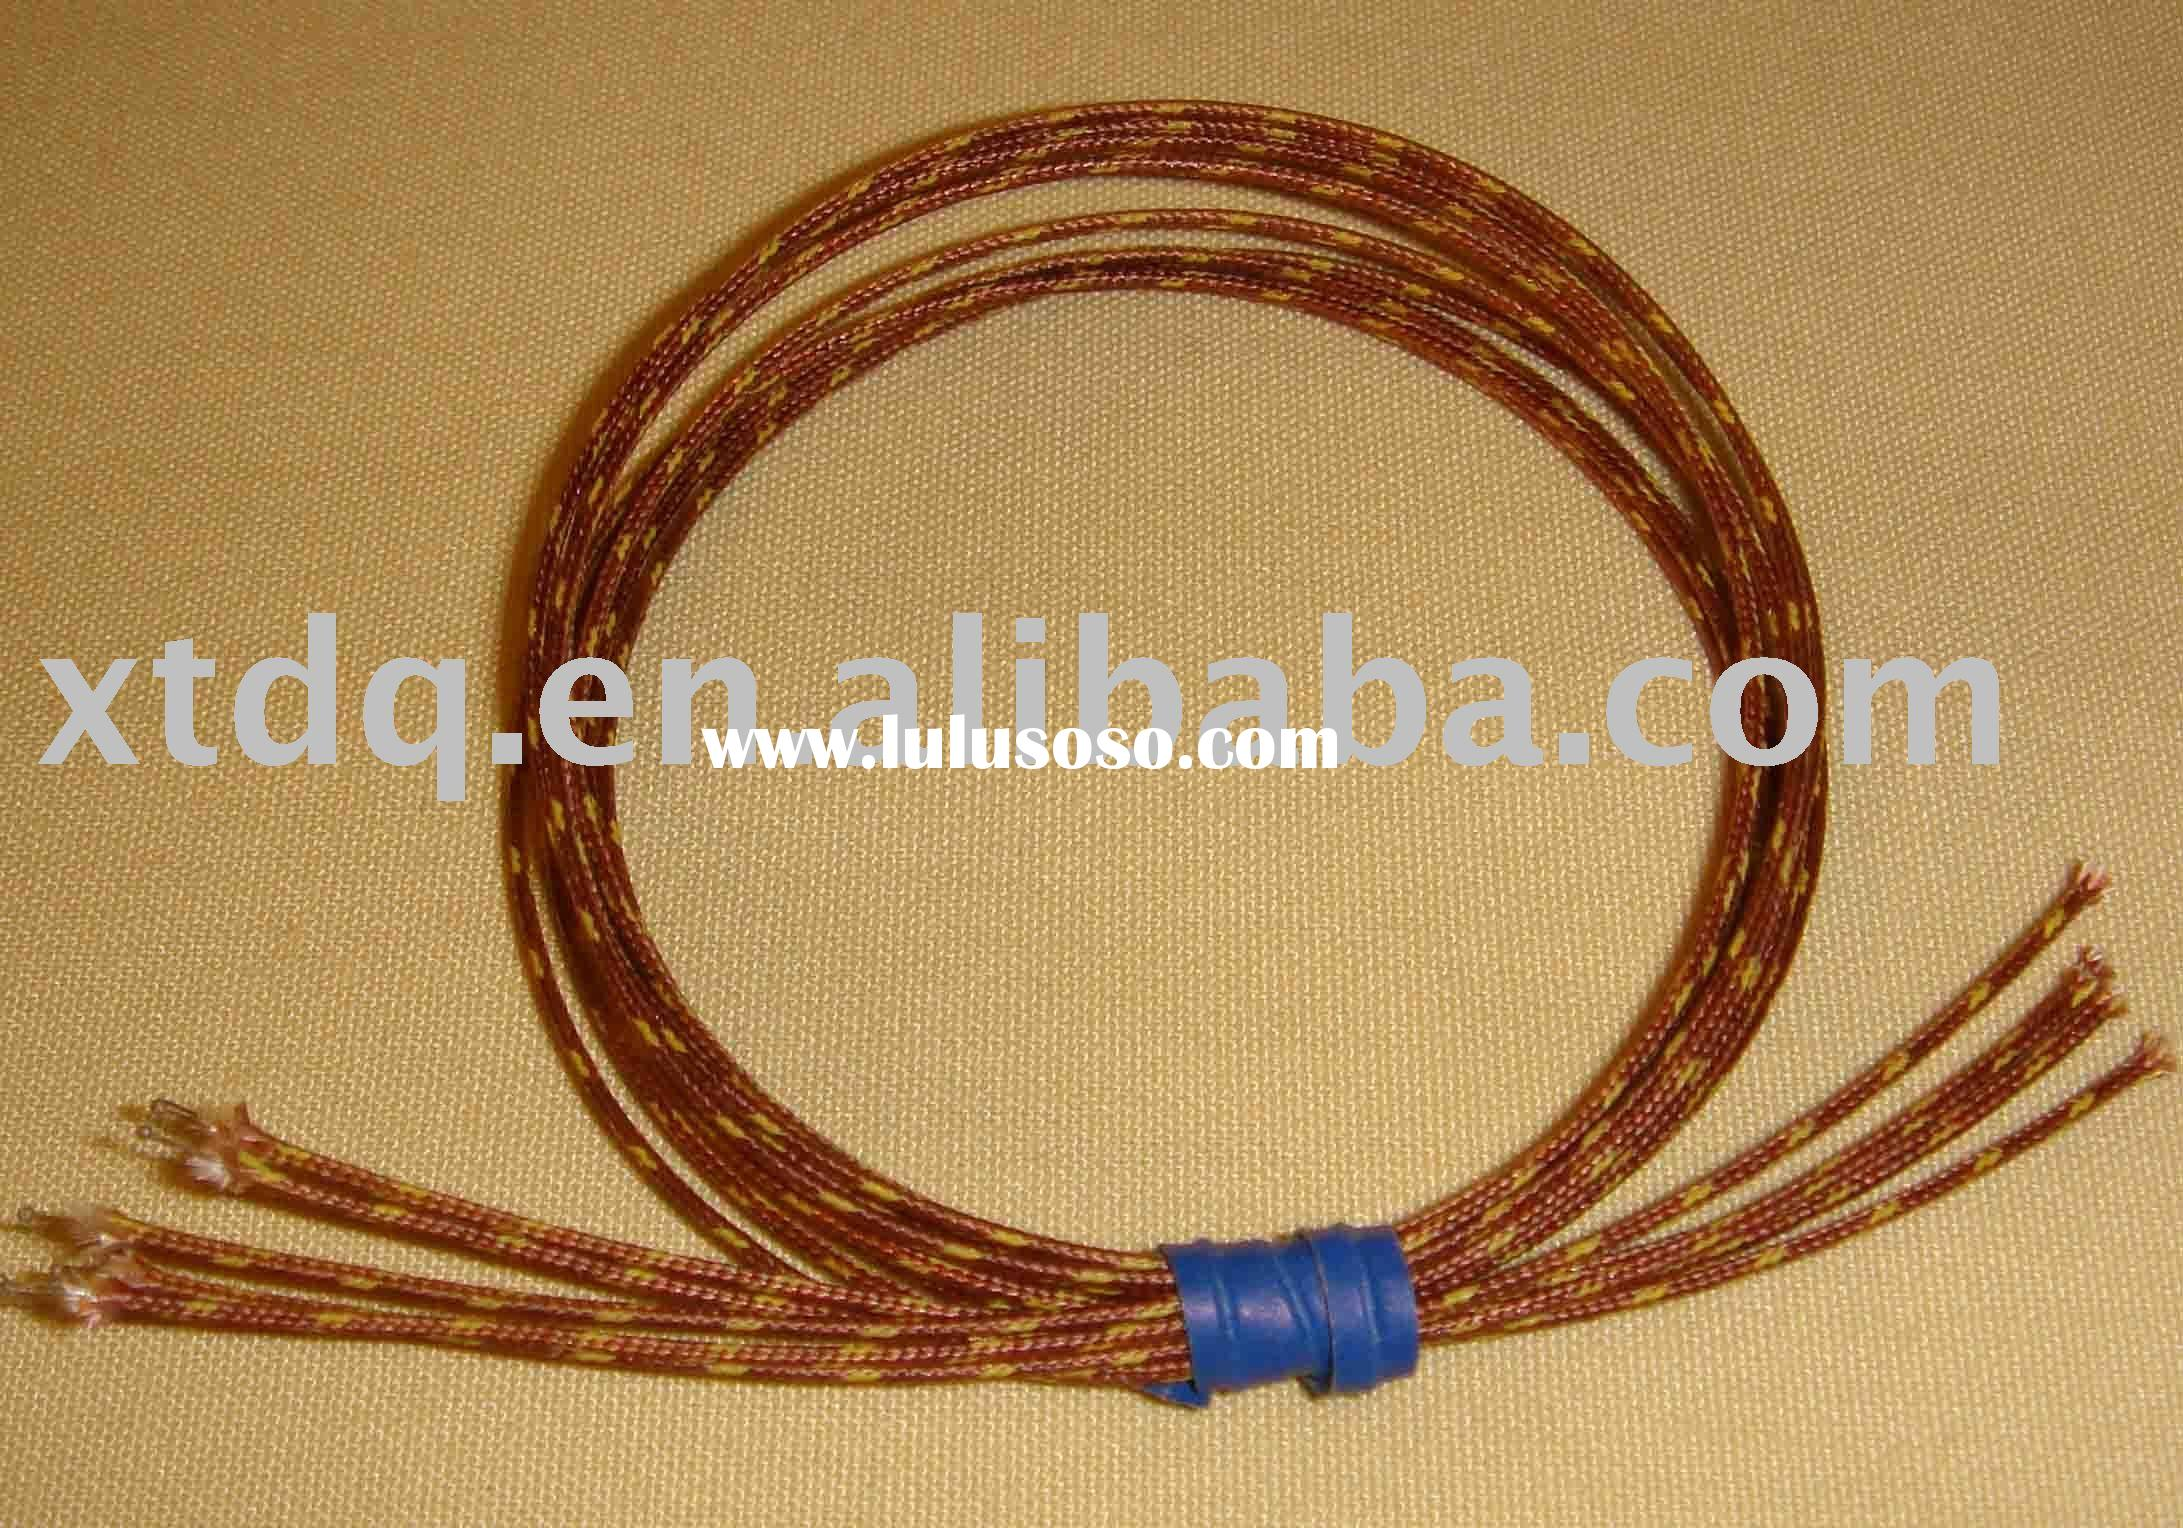 Thermocouple Wire Manufacturers : Thermocouple wire manufacturers in